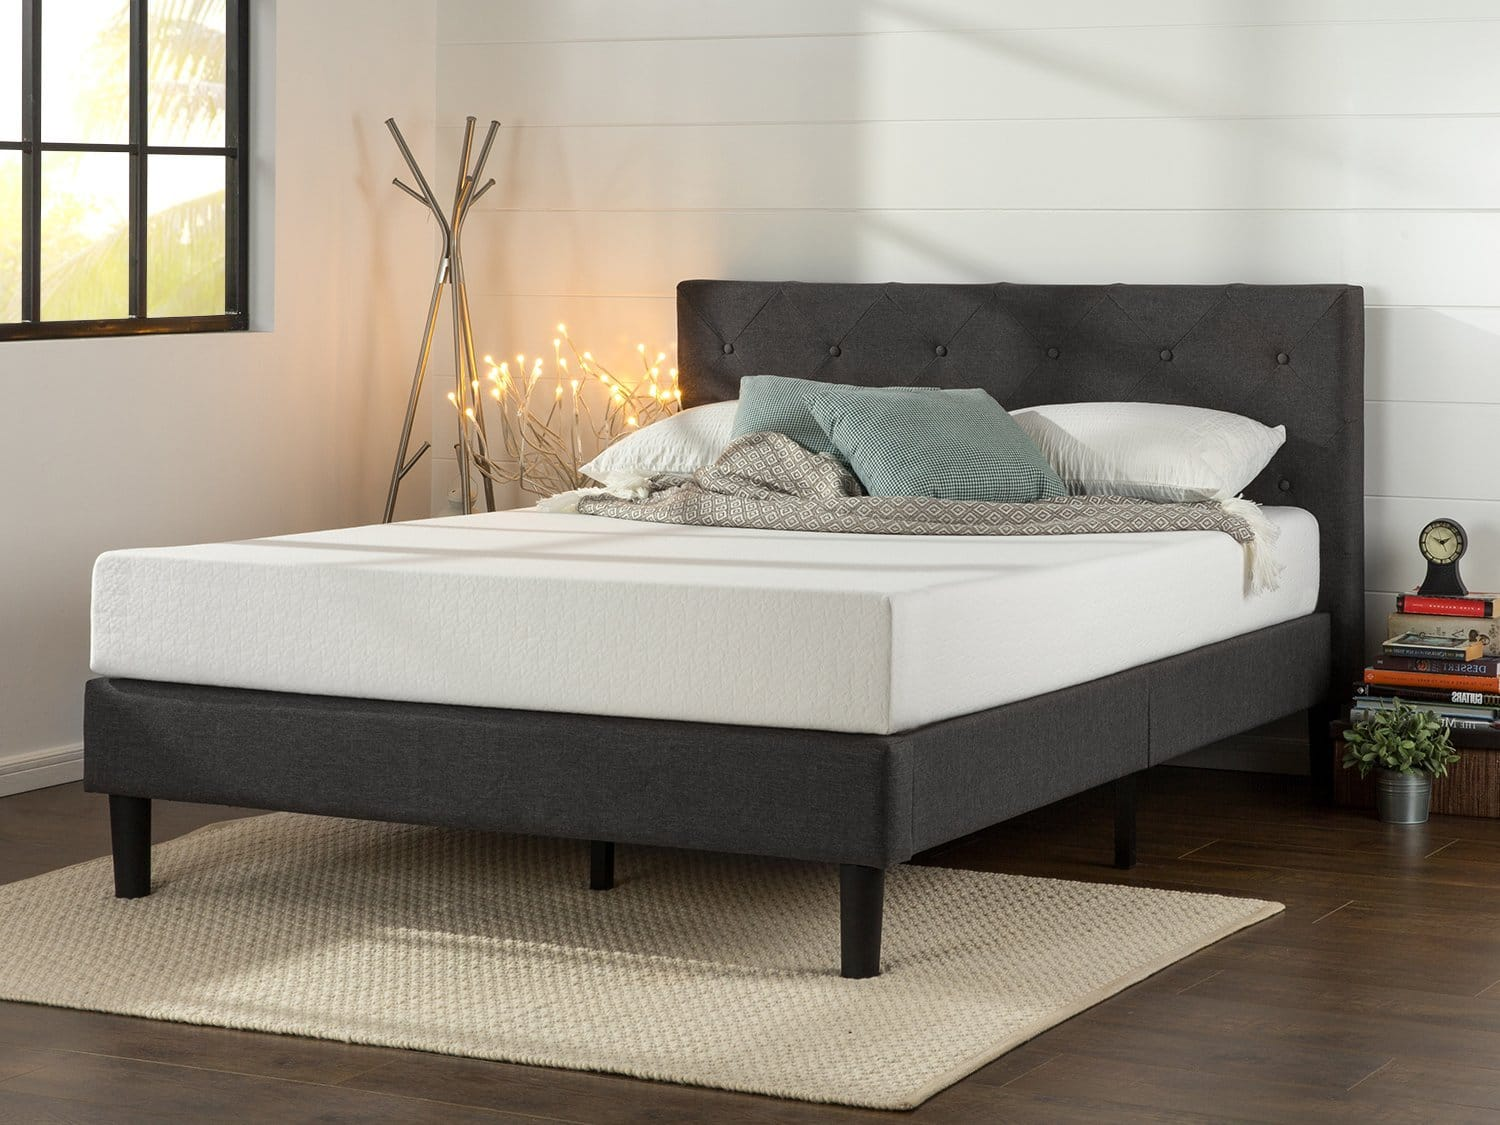 Spectacular Zinus Upholstered Diamond Stitched Platform Bed Queen Slickdeals net